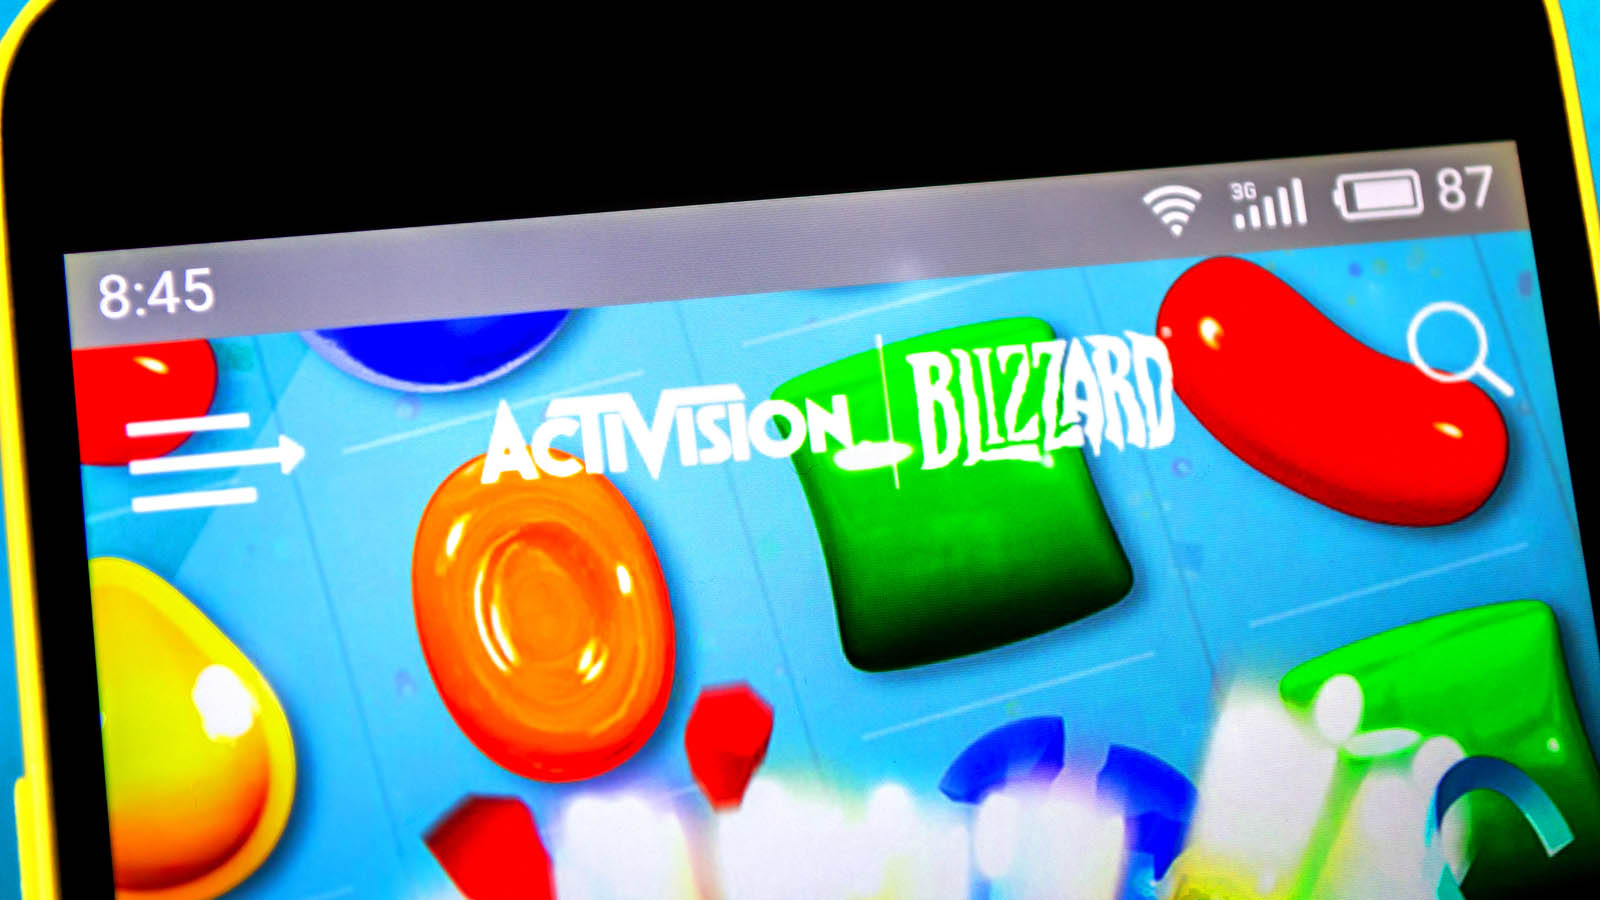 New Game Releases Will Boost Activision Blizzard Stock